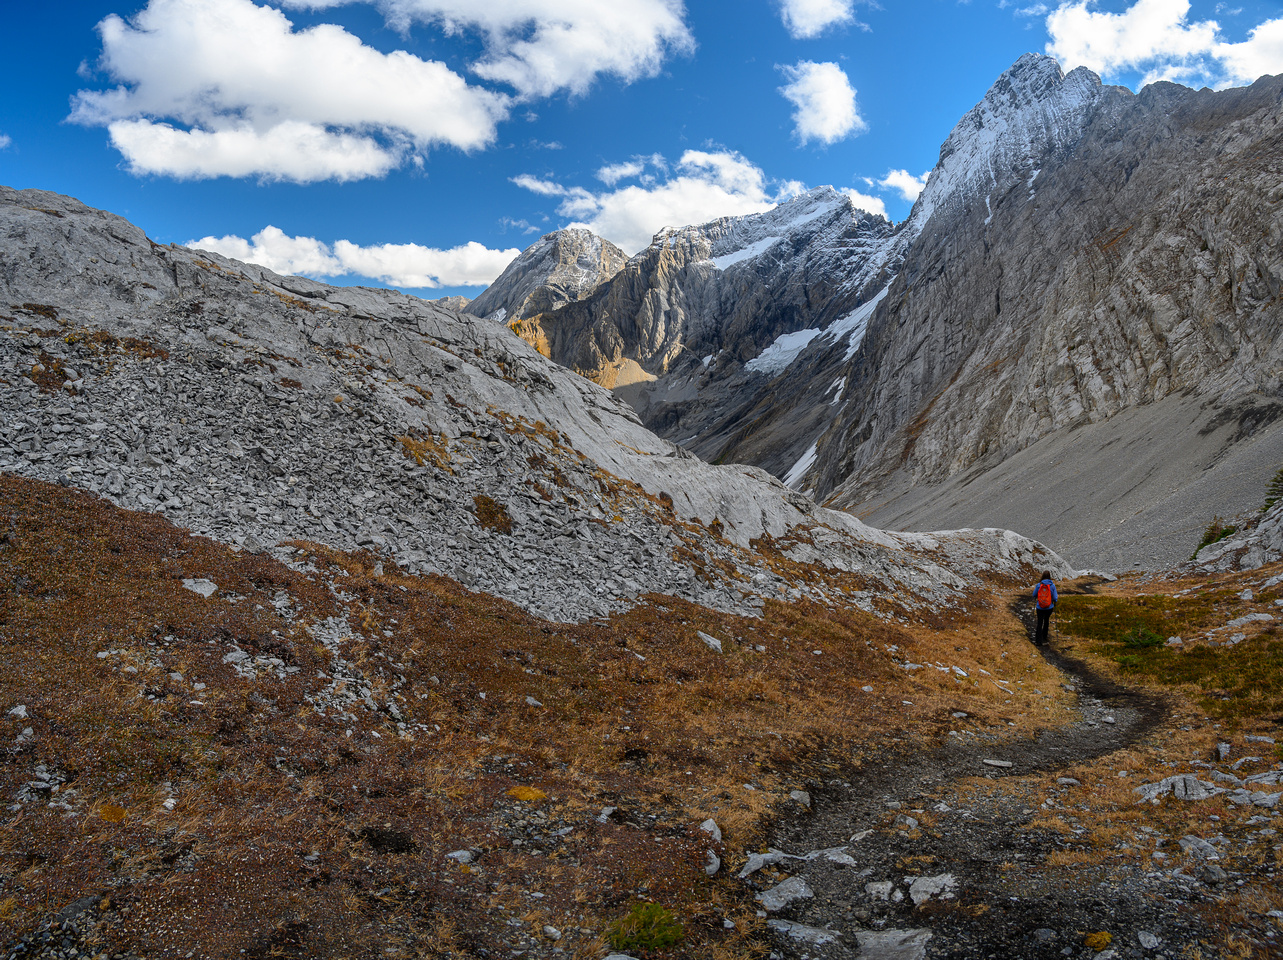 Descending into Commonwealth Creek from Smuts Pass.